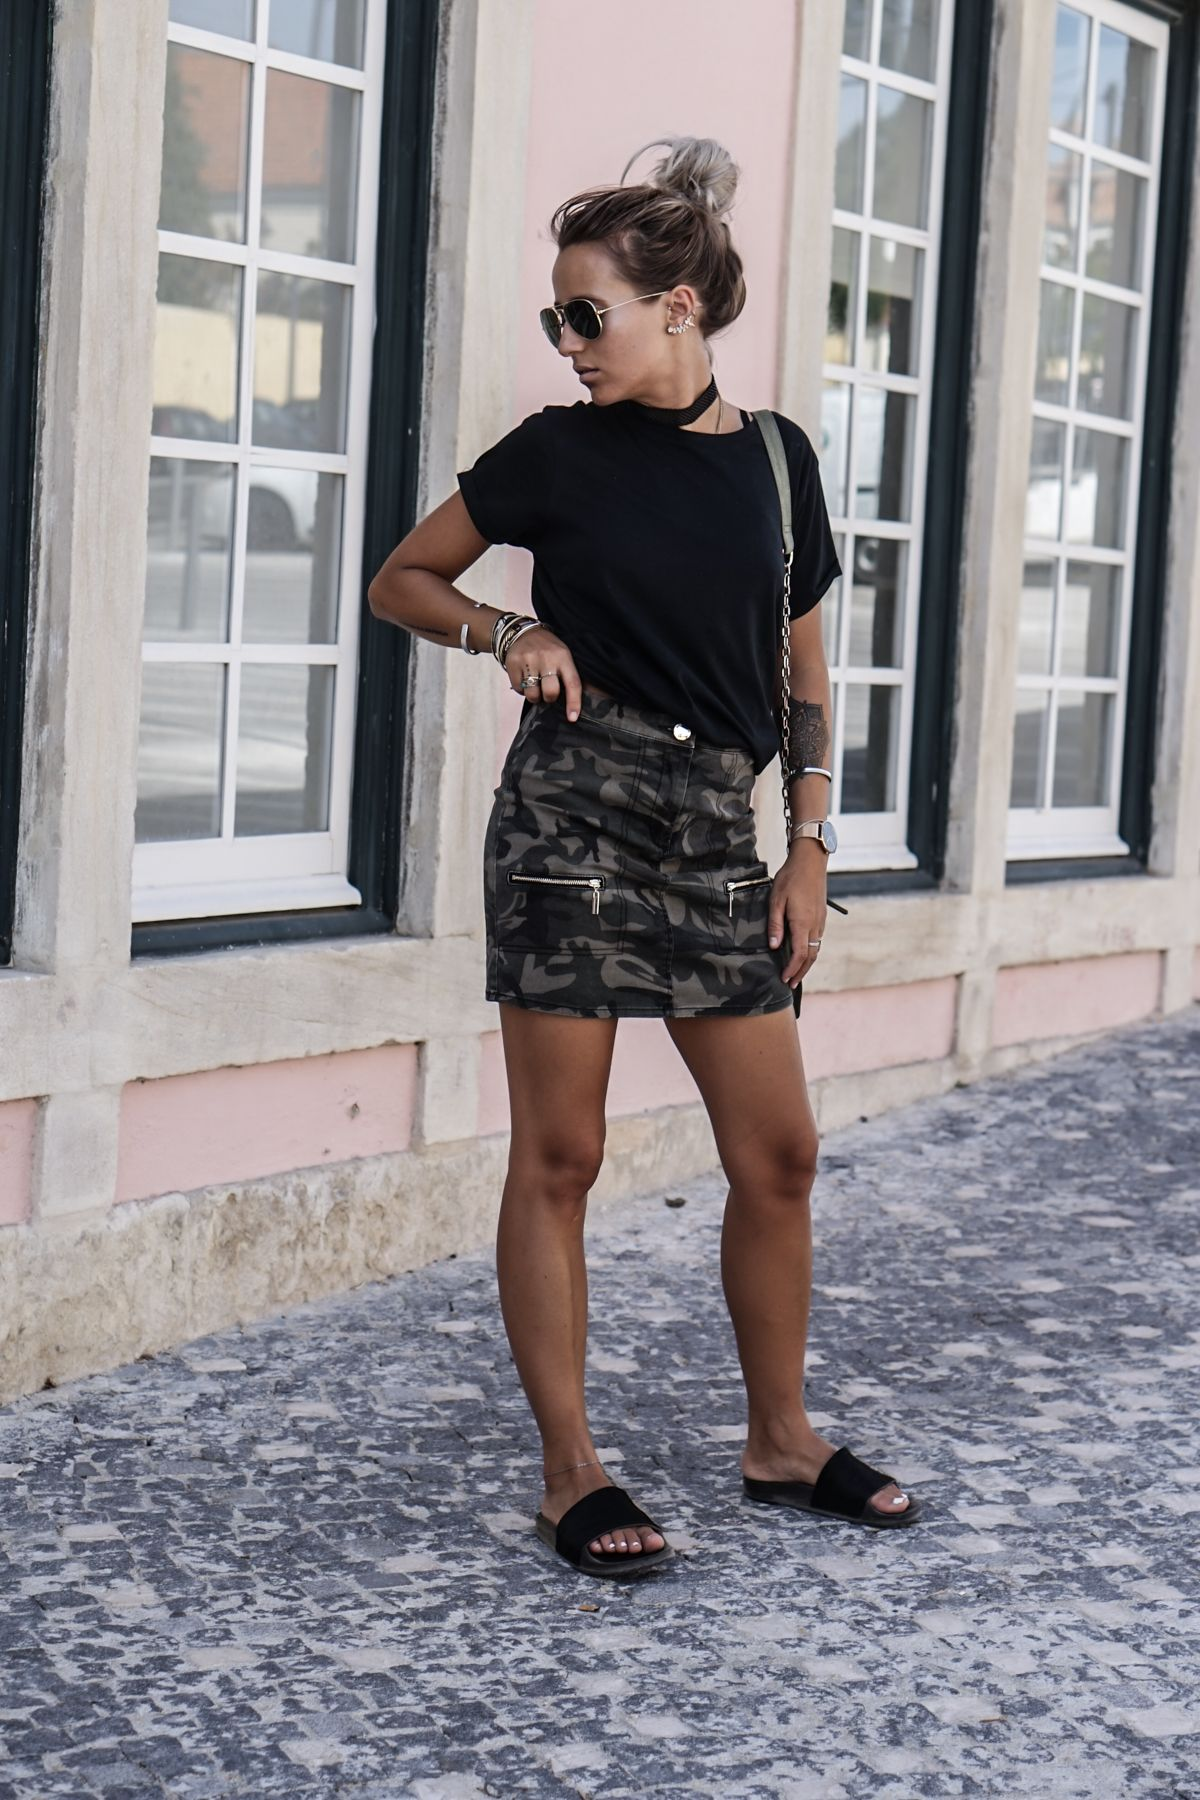 21e82bda72729 There are a hundred great ways to wear the mini skirt trend. Camille Callen  is edgy and original in this camo print skirt with zip detailing, paired  simply ...